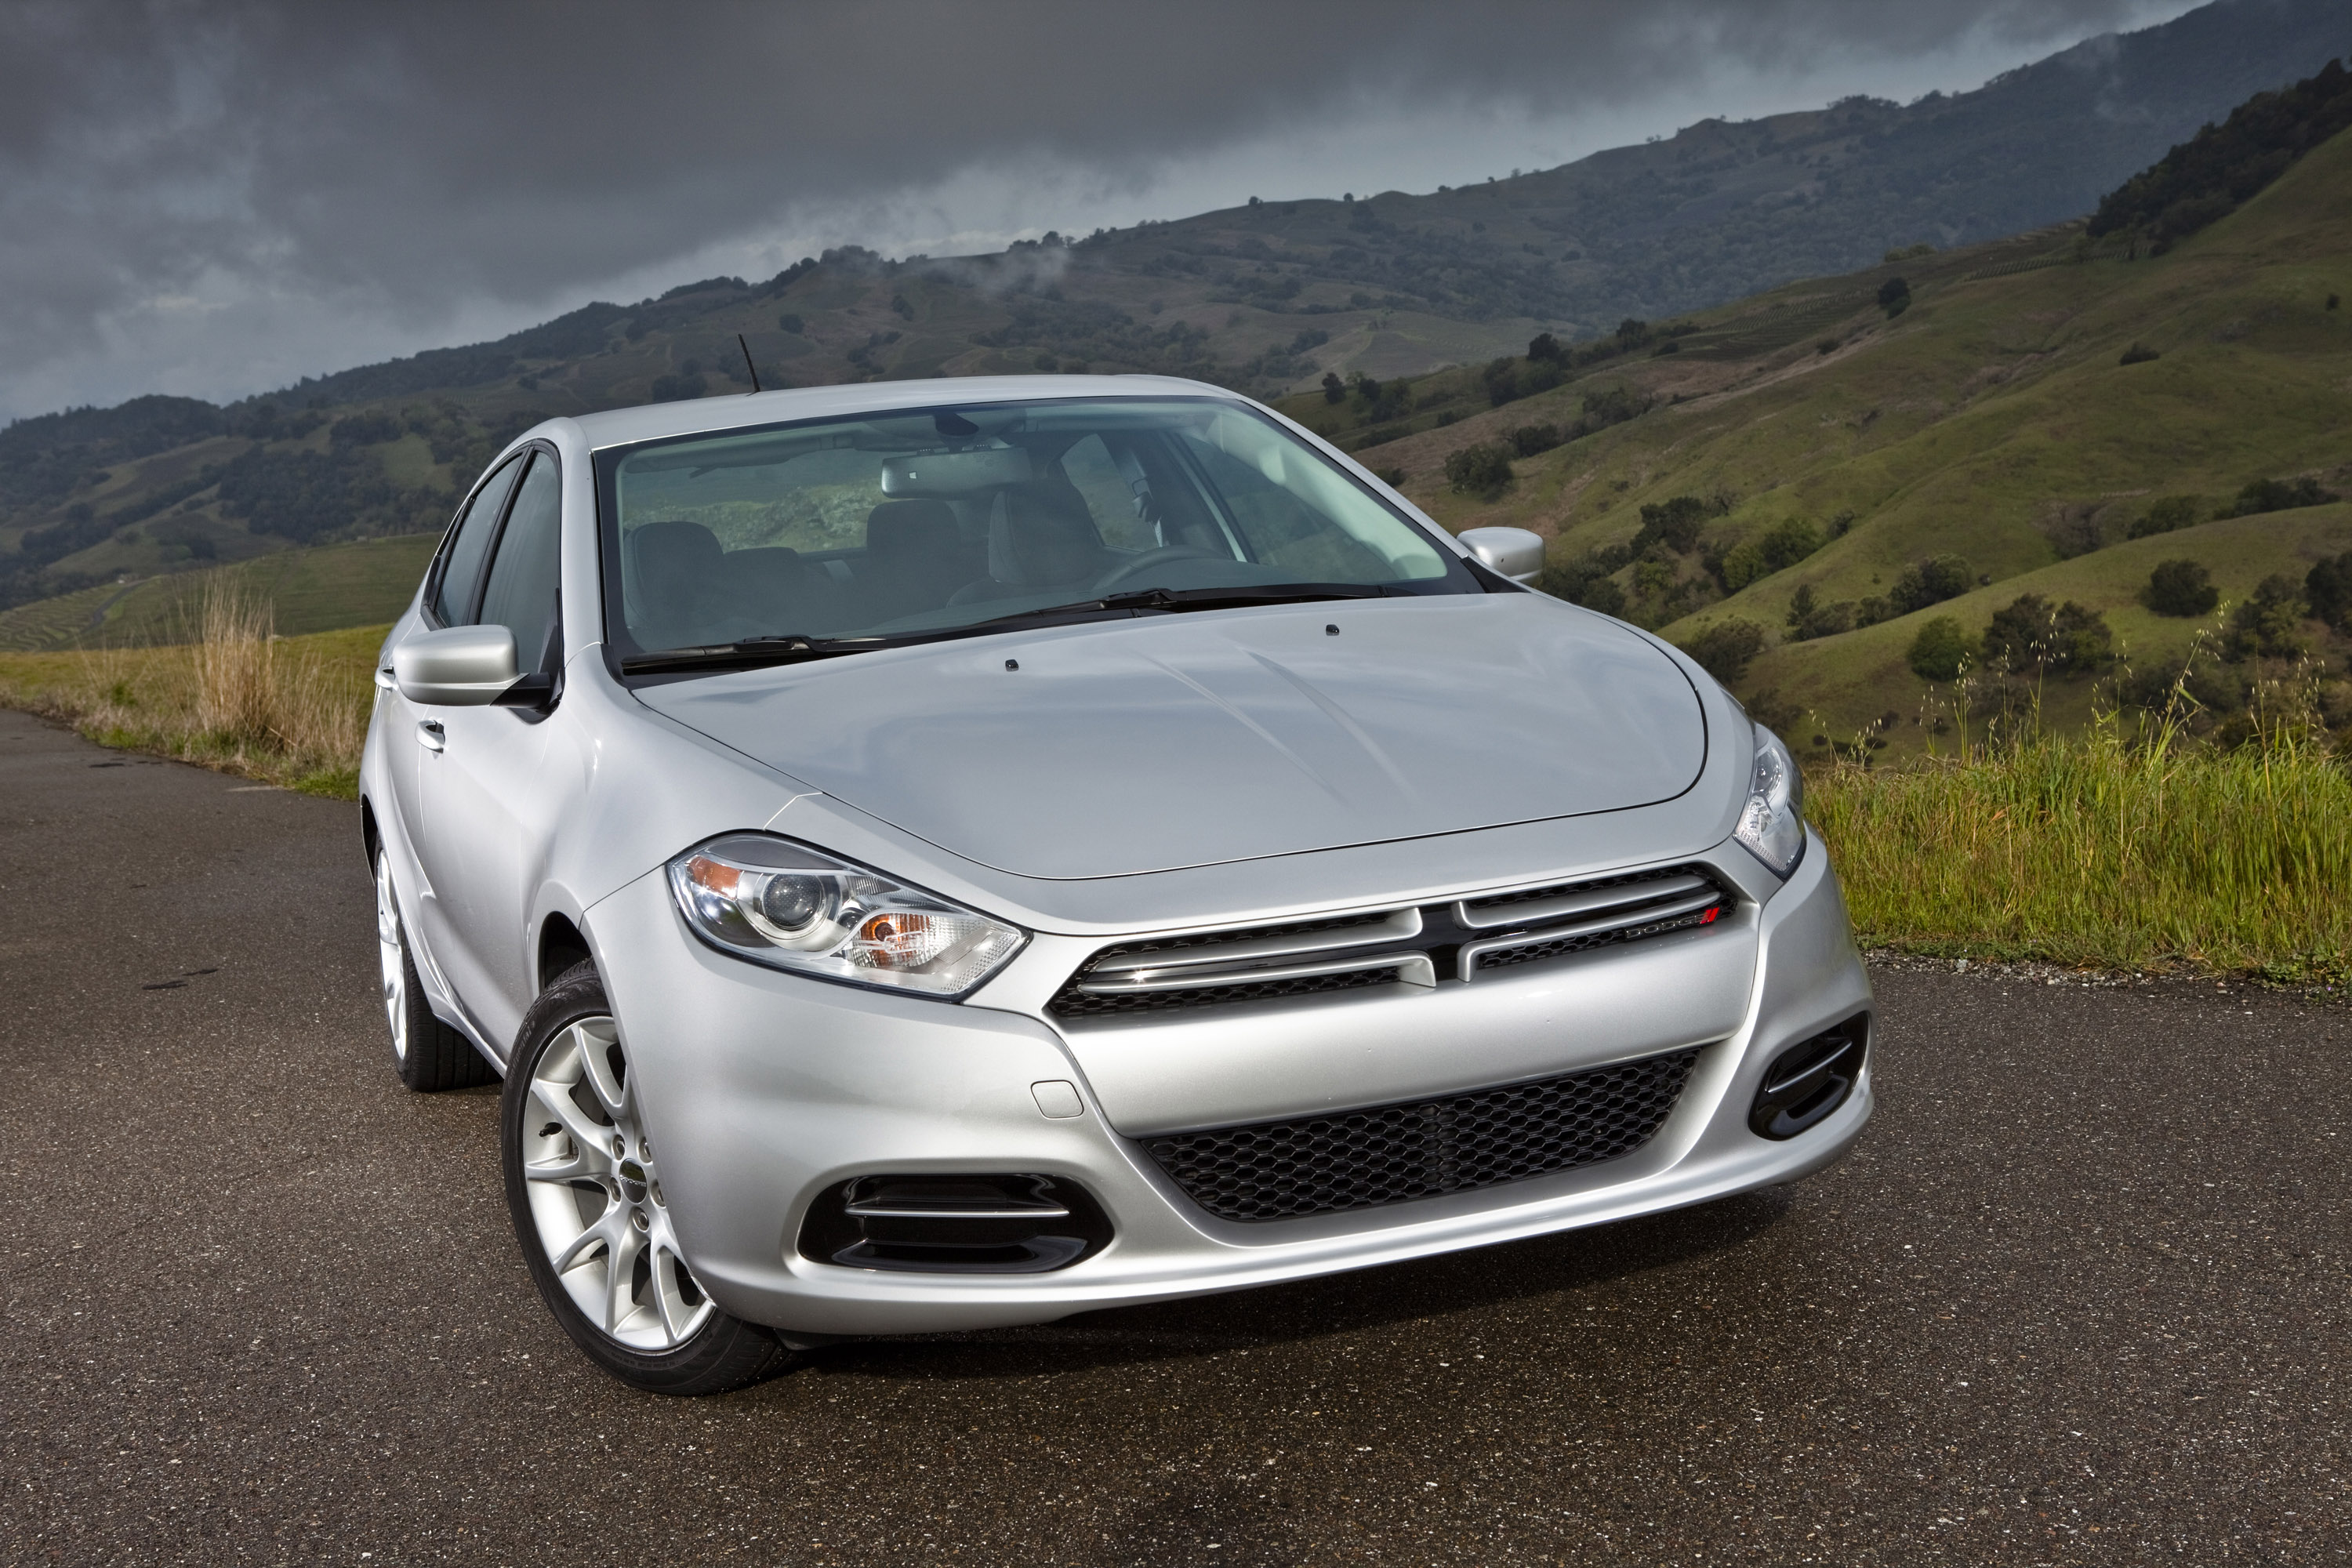 Dodge Dart Turbo >> 2013 Dodge Dart Aero: Fuel-Efficient and Powerful